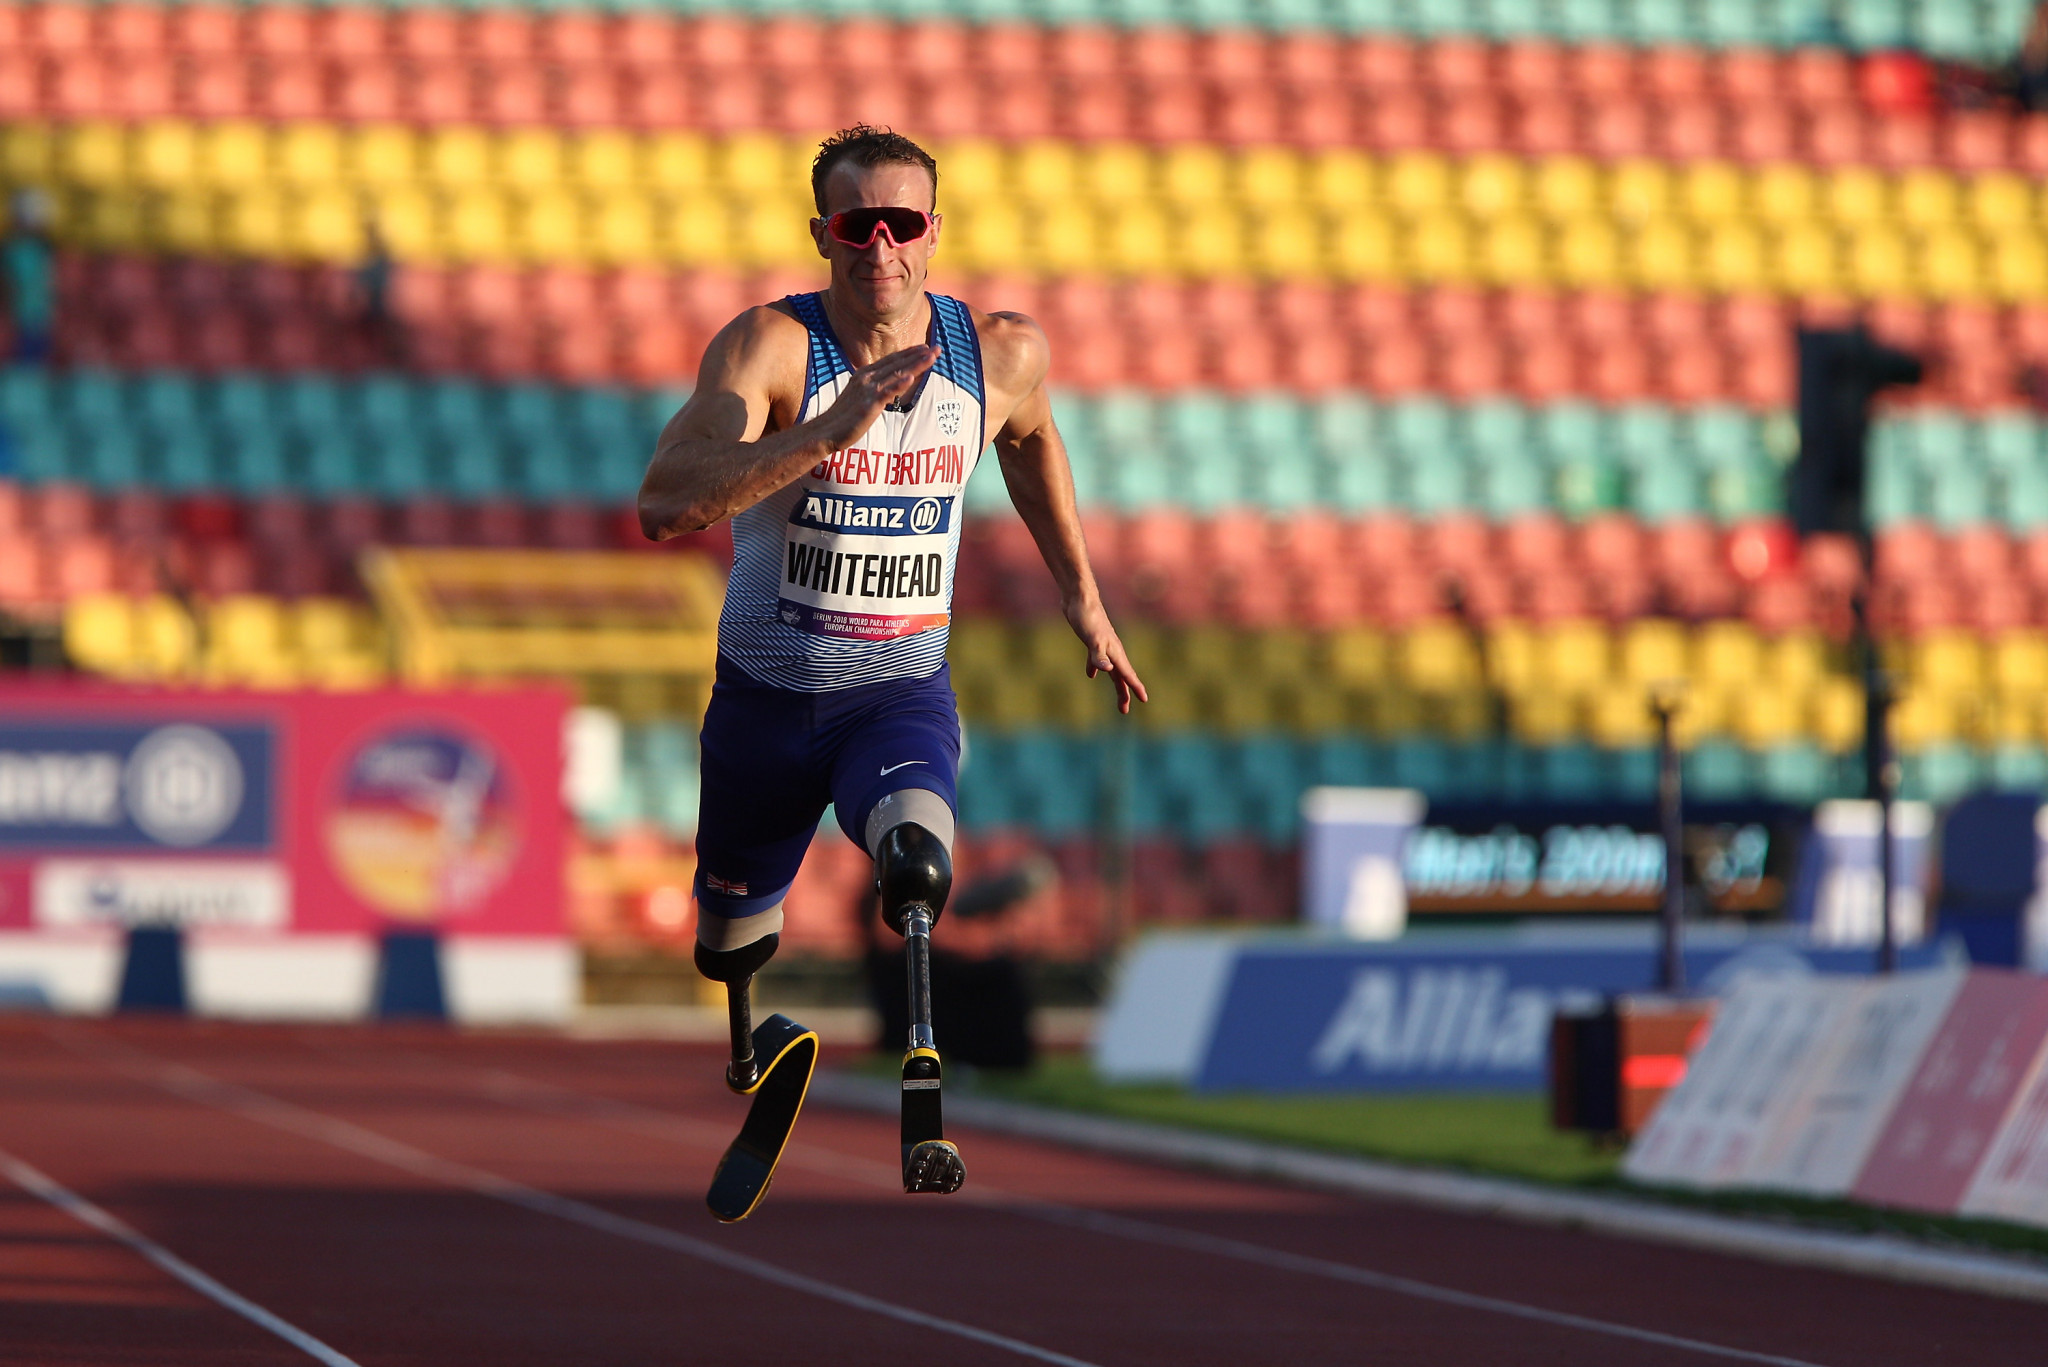 World Para Athletics European Championships postponed due to COVID-19 pandemic